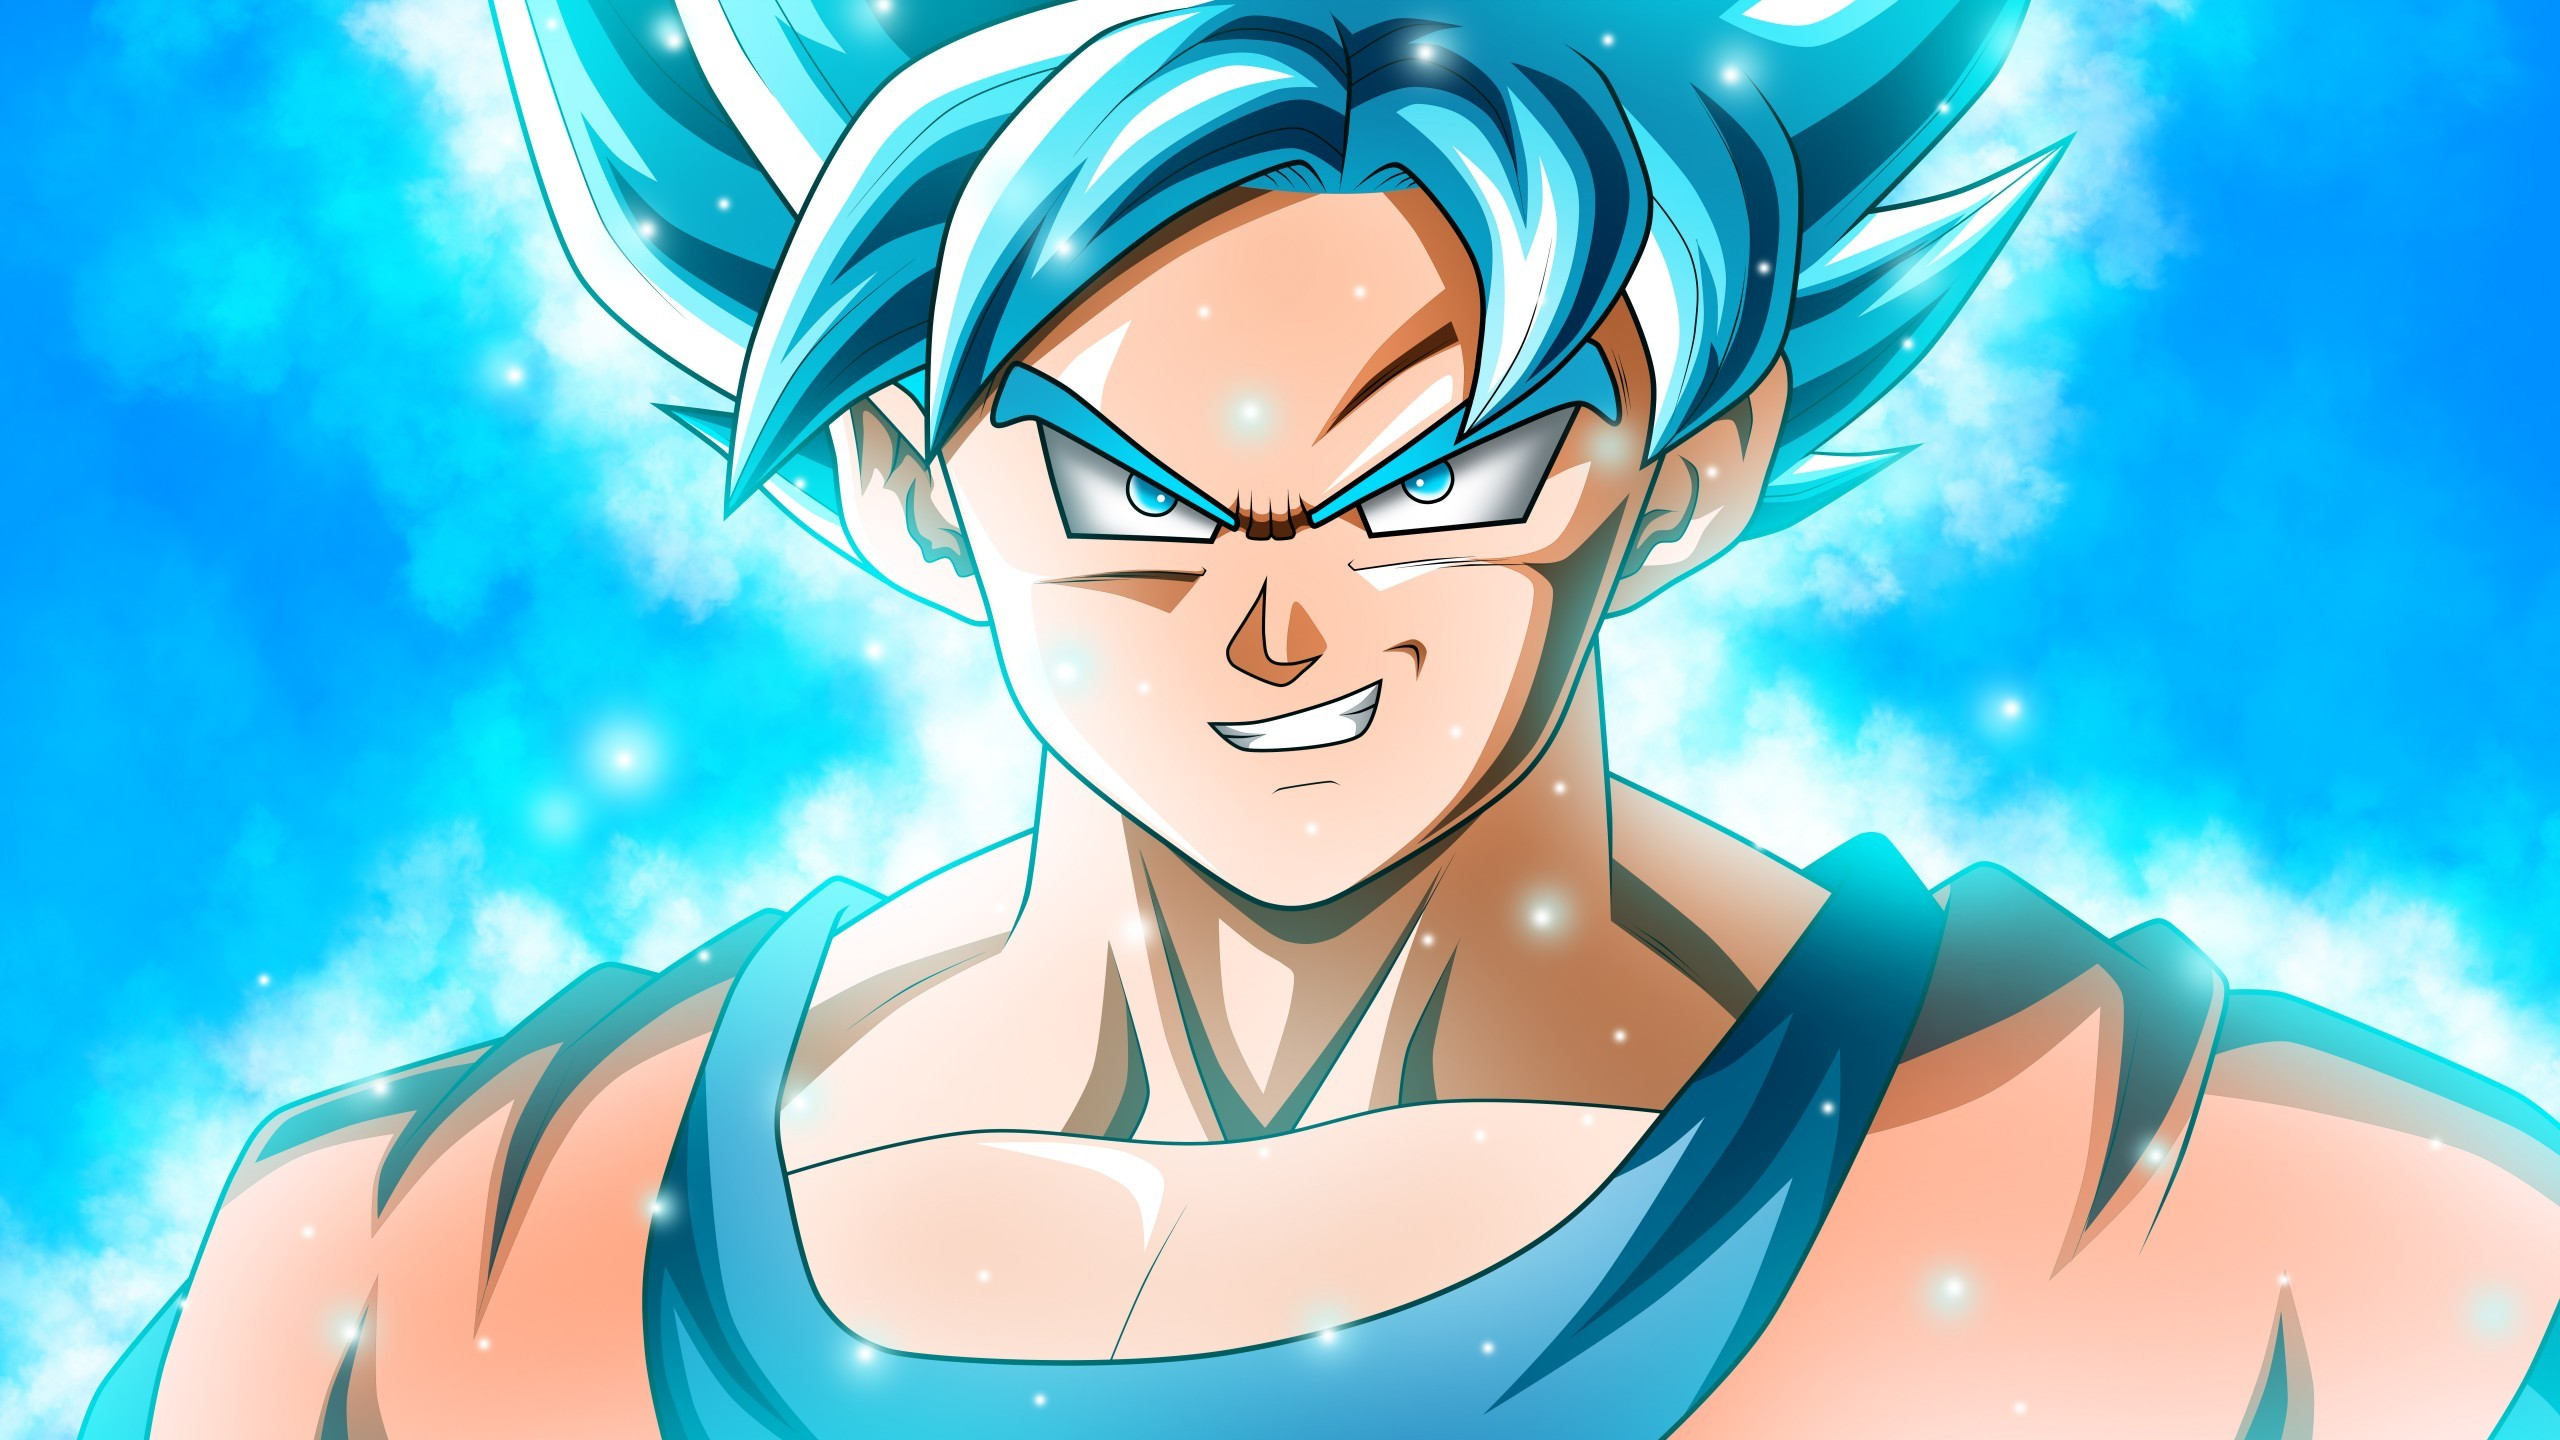 2560x1440 Get free high quality HD wallpapers dragon ball z live wallpaper iphone